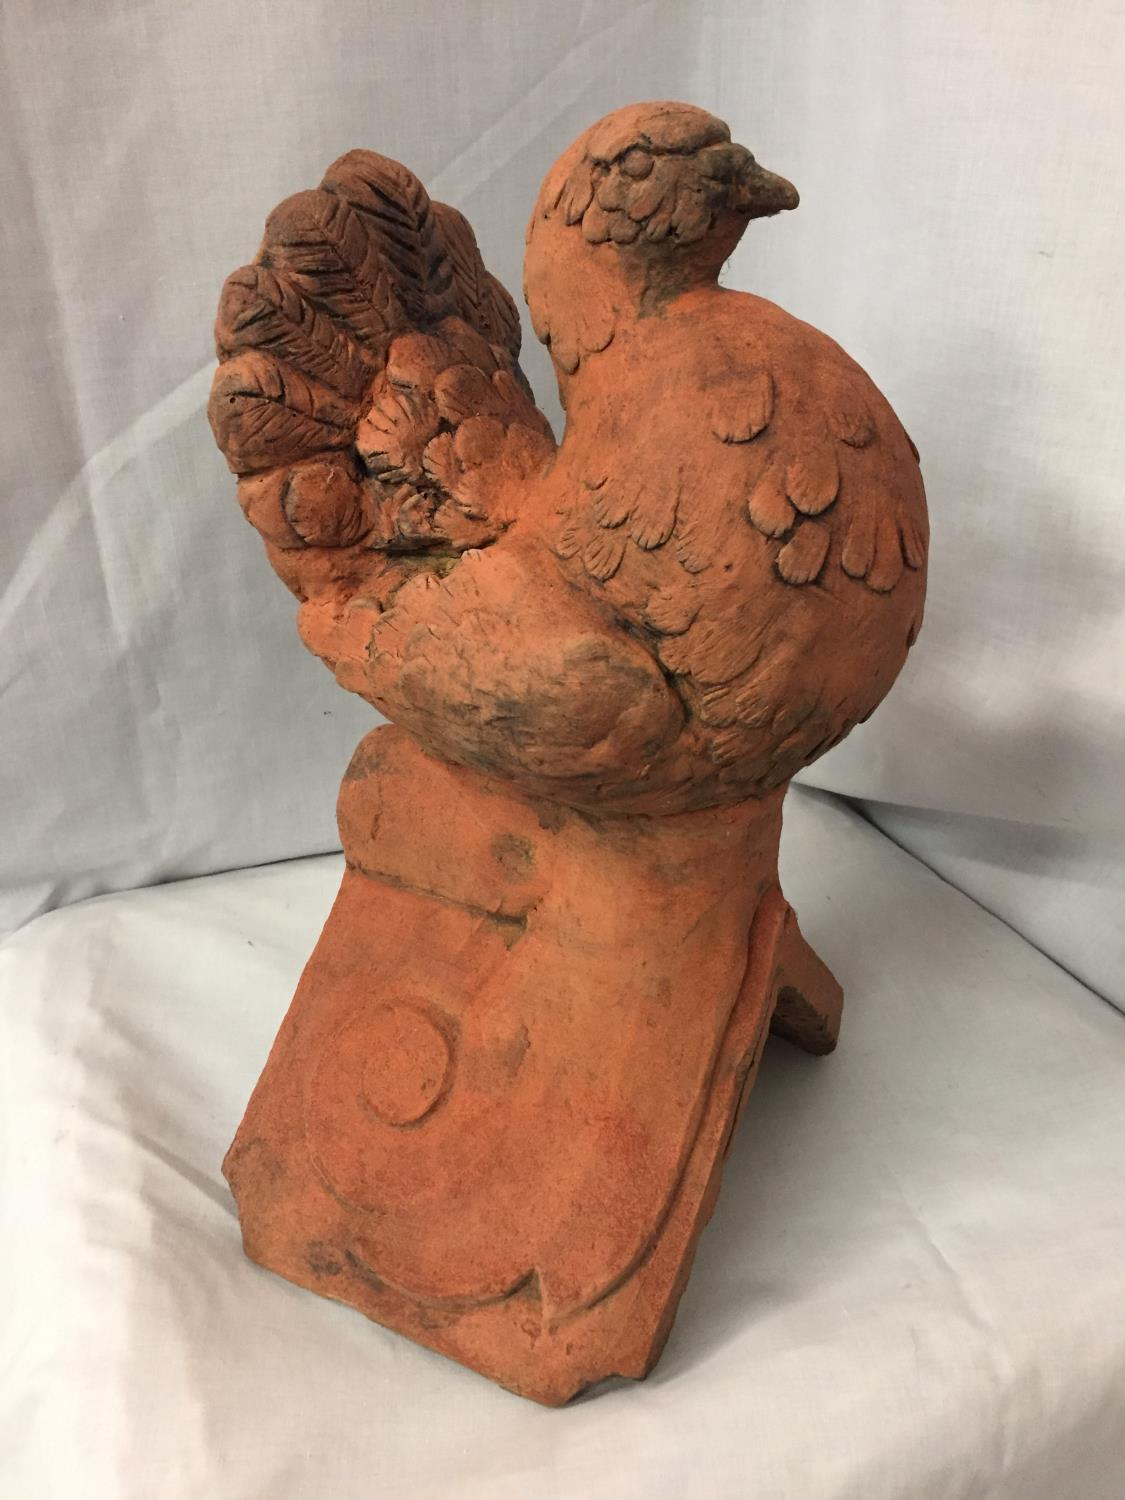 A TERRACOTTA ROOF TILE FINIAL OF A DOVE